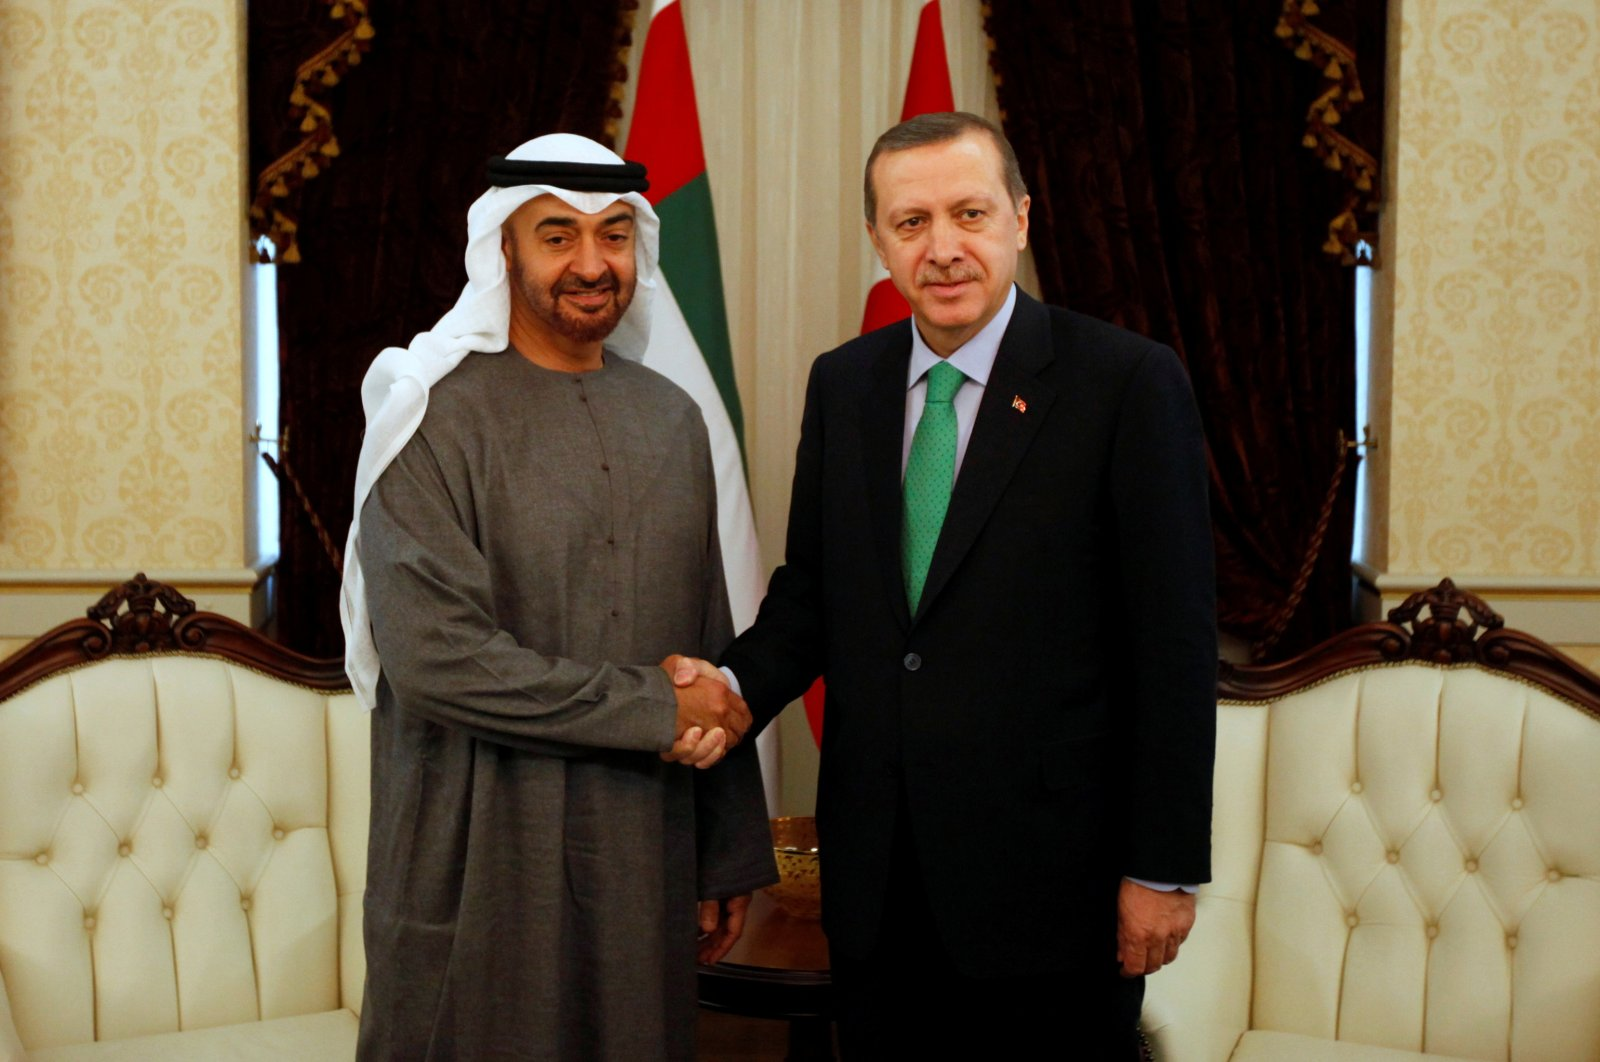 Abu Dhabi's Sheikh Mohammed bin Zayed Al Nahyan (L) shakes hands with then-Prime Minister Recep Tayyip Erdoğan before a meeting in Ankara, Turkey, Feb. 28, 2012. (Reuters Photo)